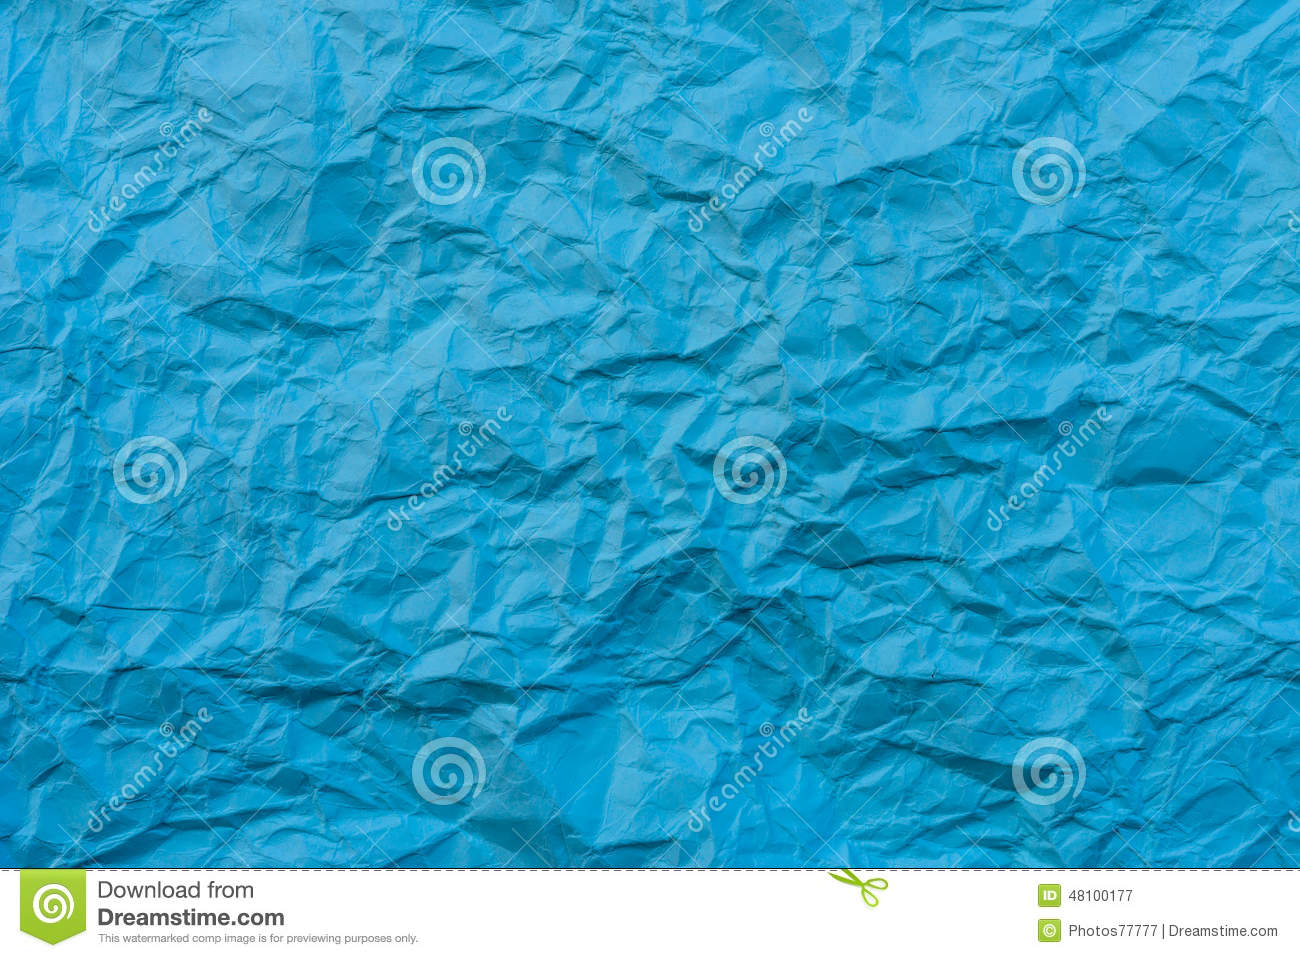 blue wrinkled paper texture - photo #13